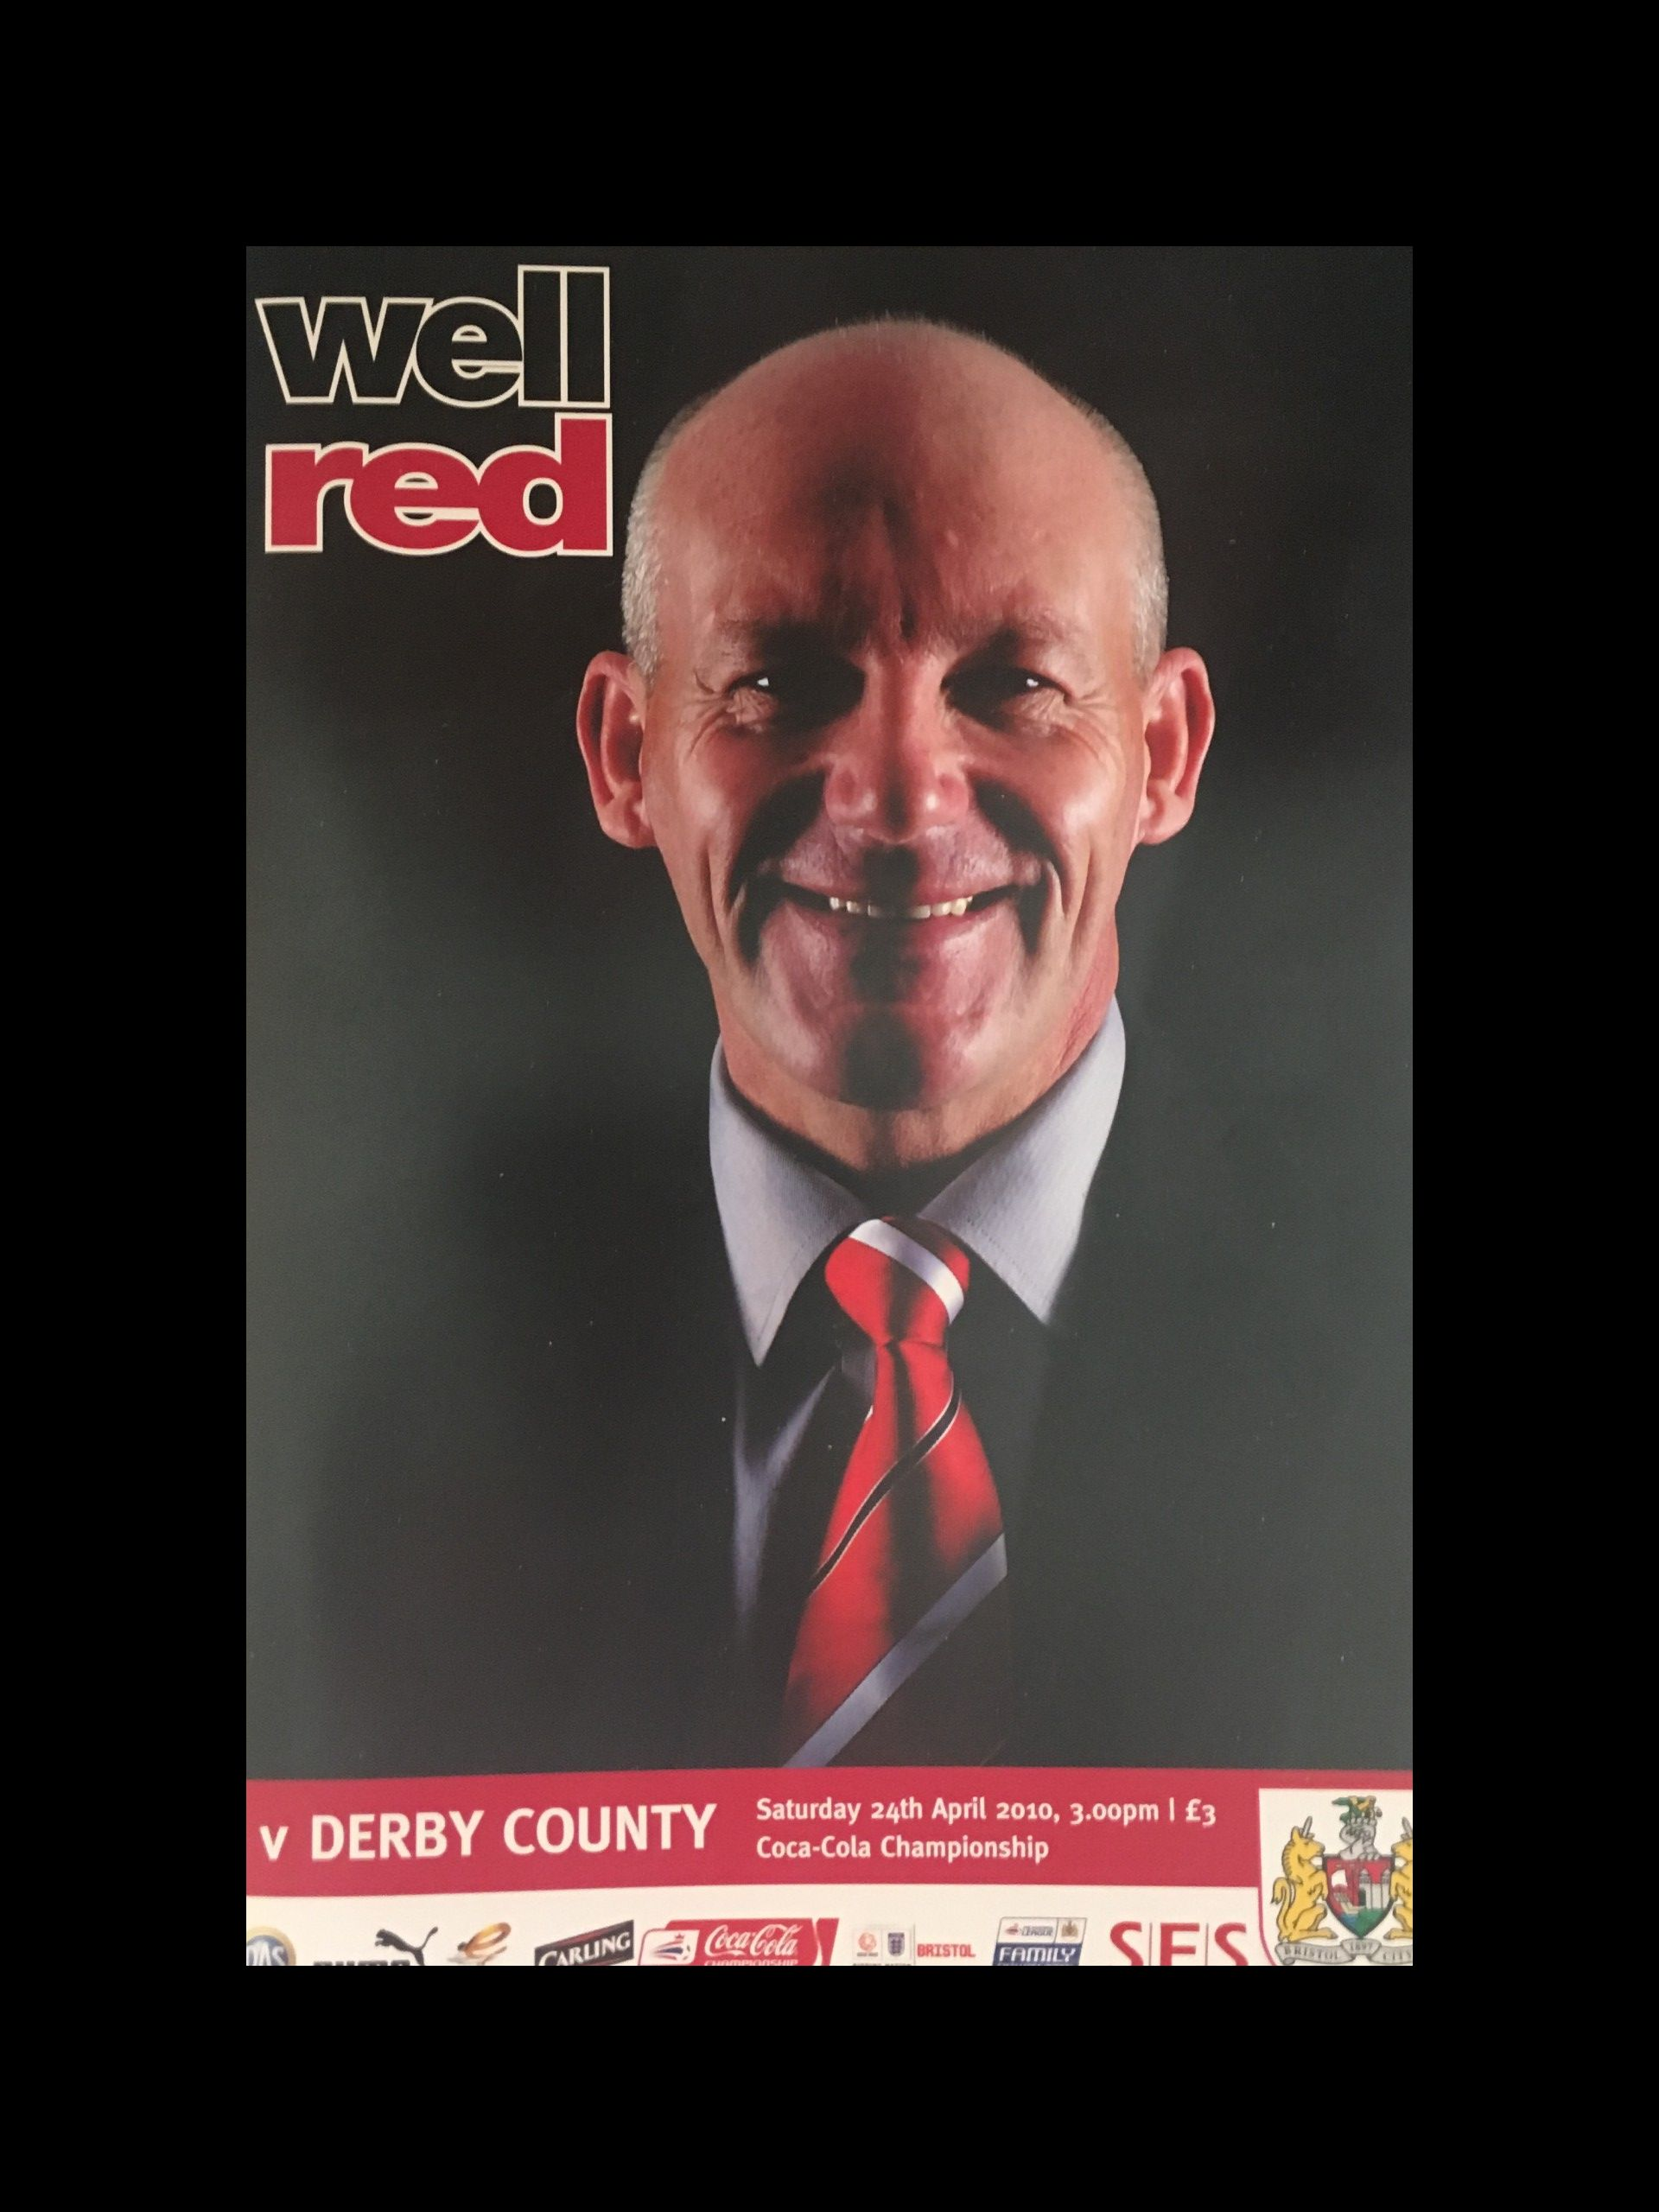 Bristol City v Derby County 24-04-2010 Programme